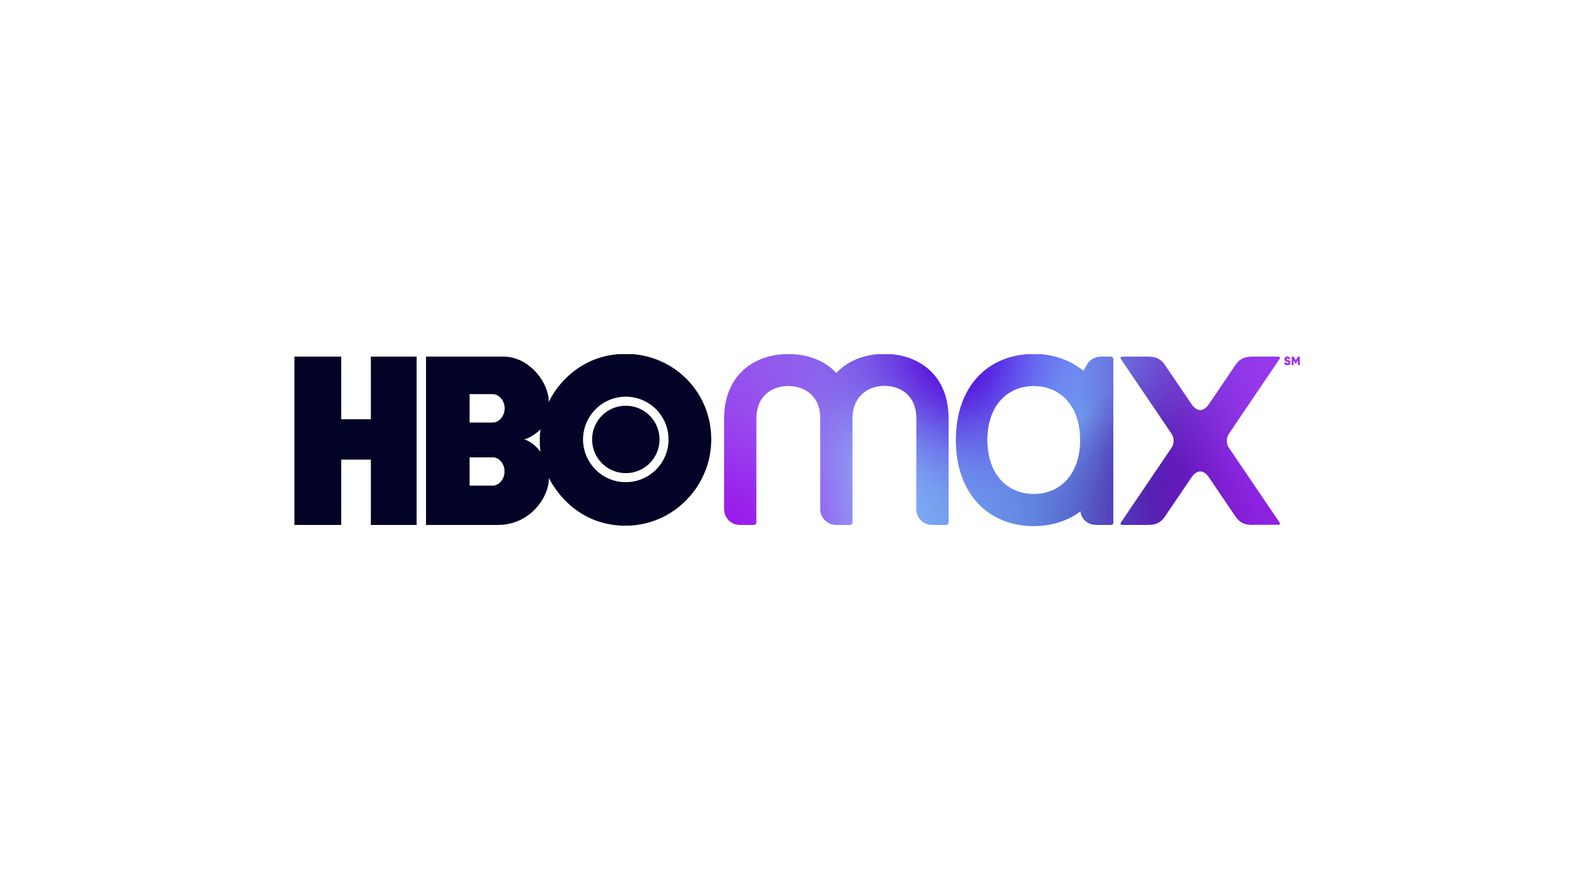 AT&T's WarnerMedia will launch its new highly-anticipated streaming service HBO Max on May 27.